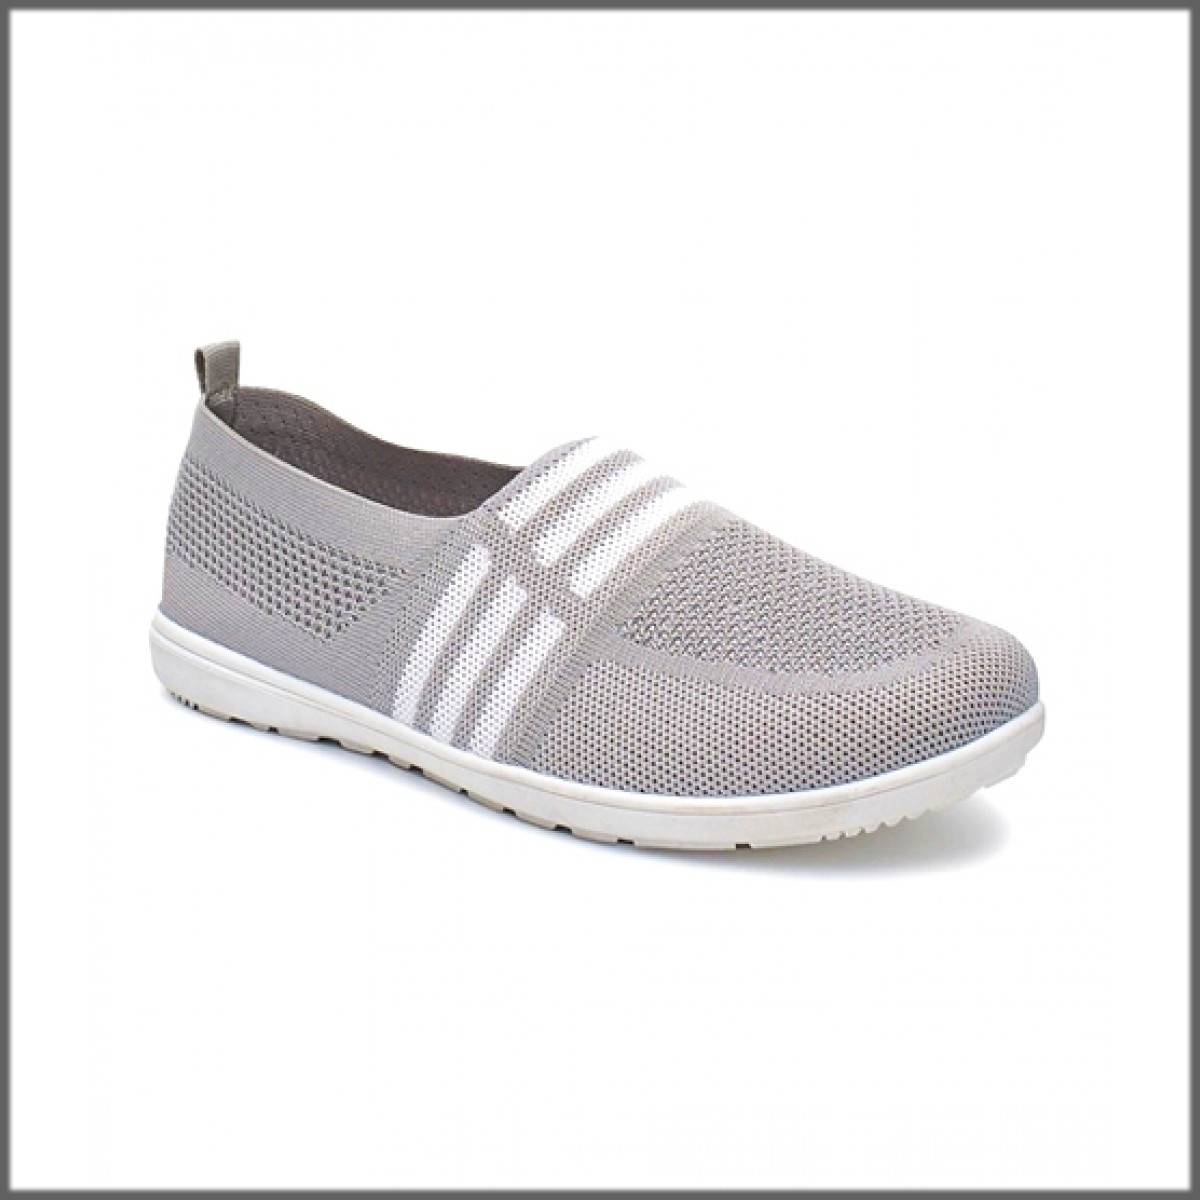 servis shoes for women